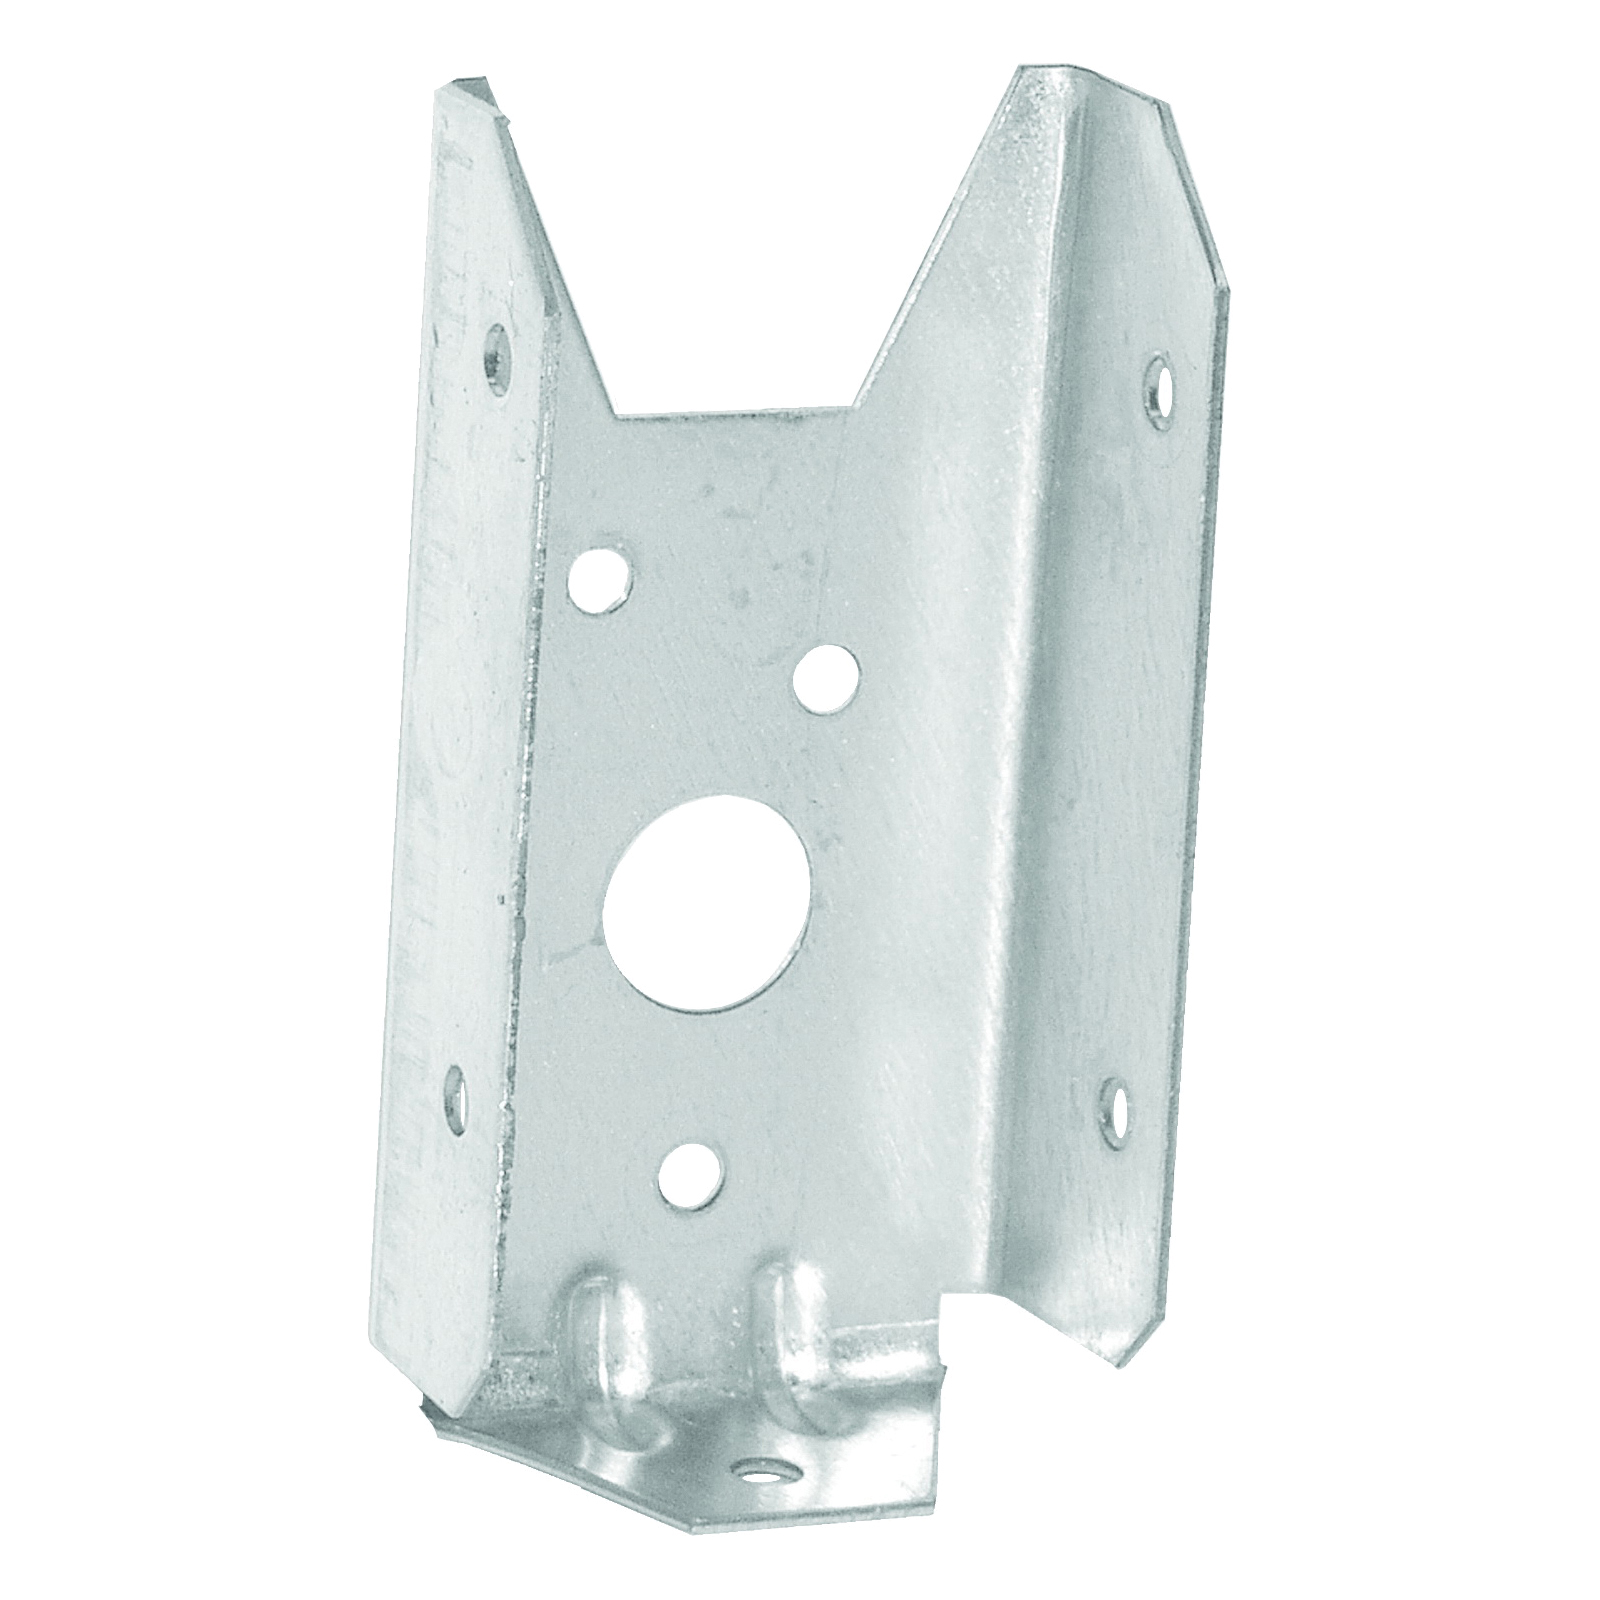 Picture of MiTek FB24-TZ Fence Bracket, 3/4 in L, 1-9/16 in W, 20 Thick Material, Steel, Zinc